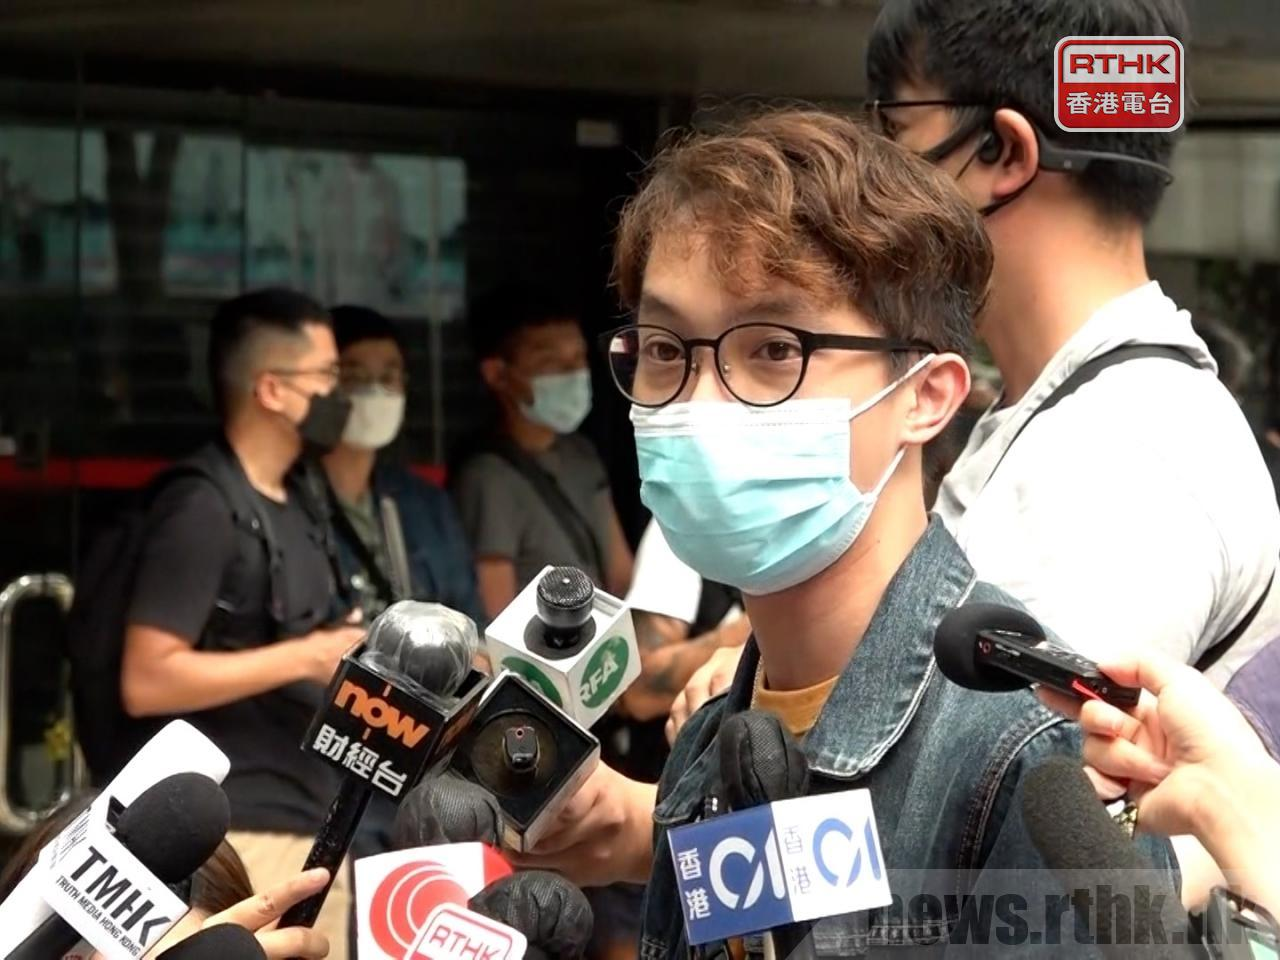 Civil Human Rights Front's convenor, Figo Chan, has been jailed over an anti-government protest in 2019. File photo: RTHK